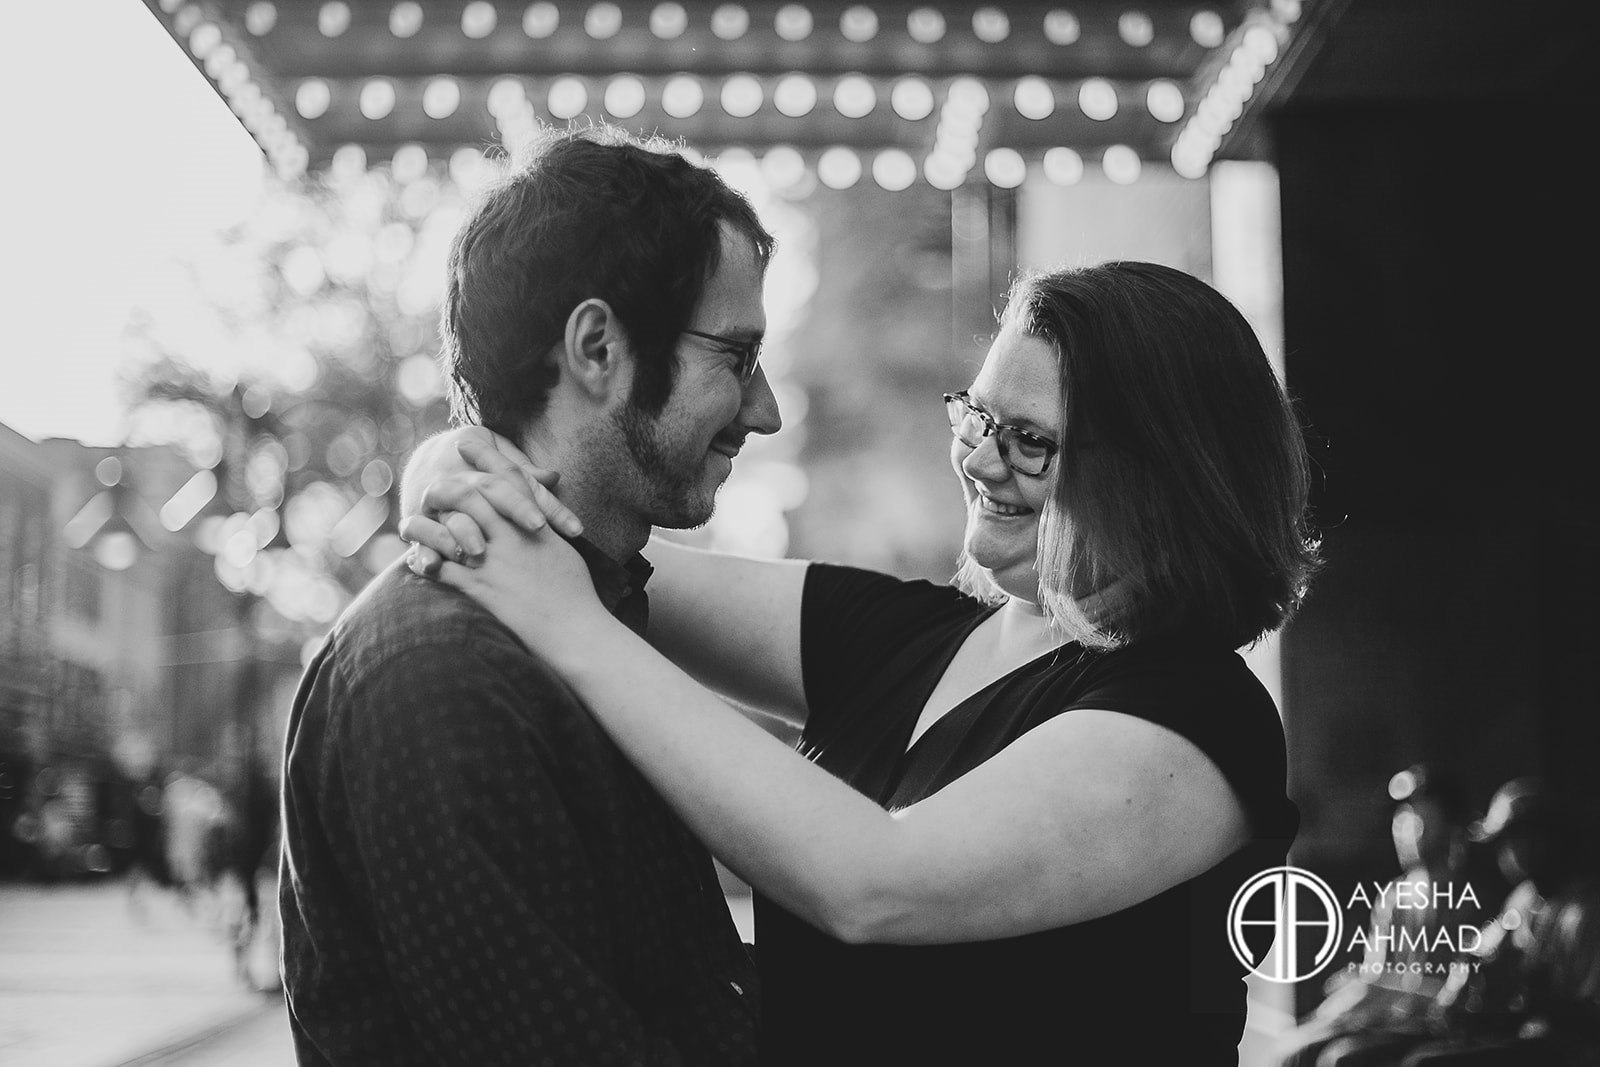 Jen and cameron embrace in front of The Paramount Theatre during couples session in Downtown Charlottesville Virginia Ayesha Ahmad Photography